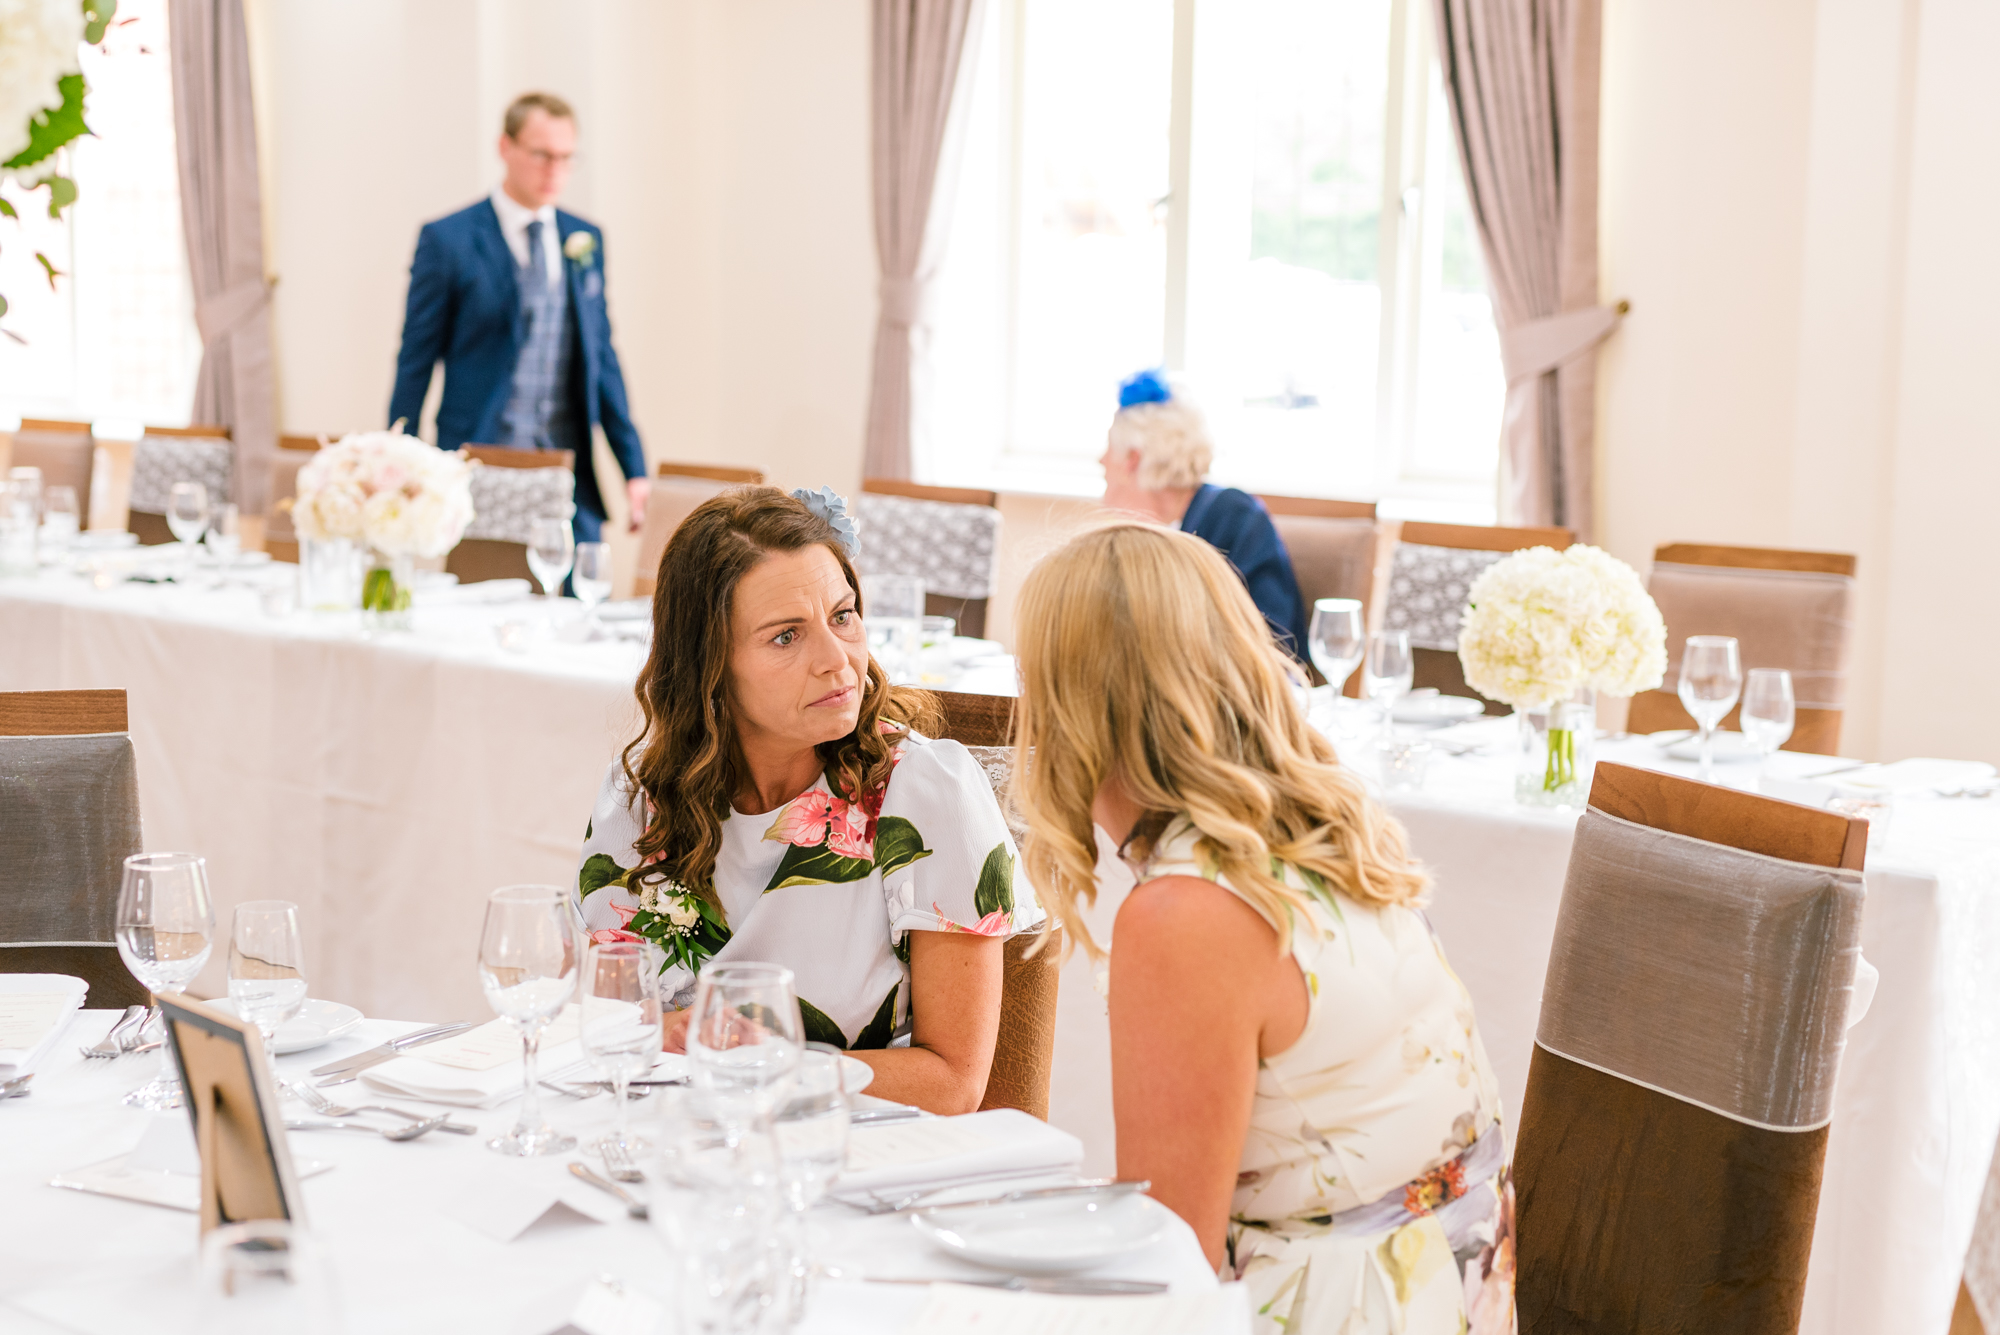 two wedding guests having a chat at a table